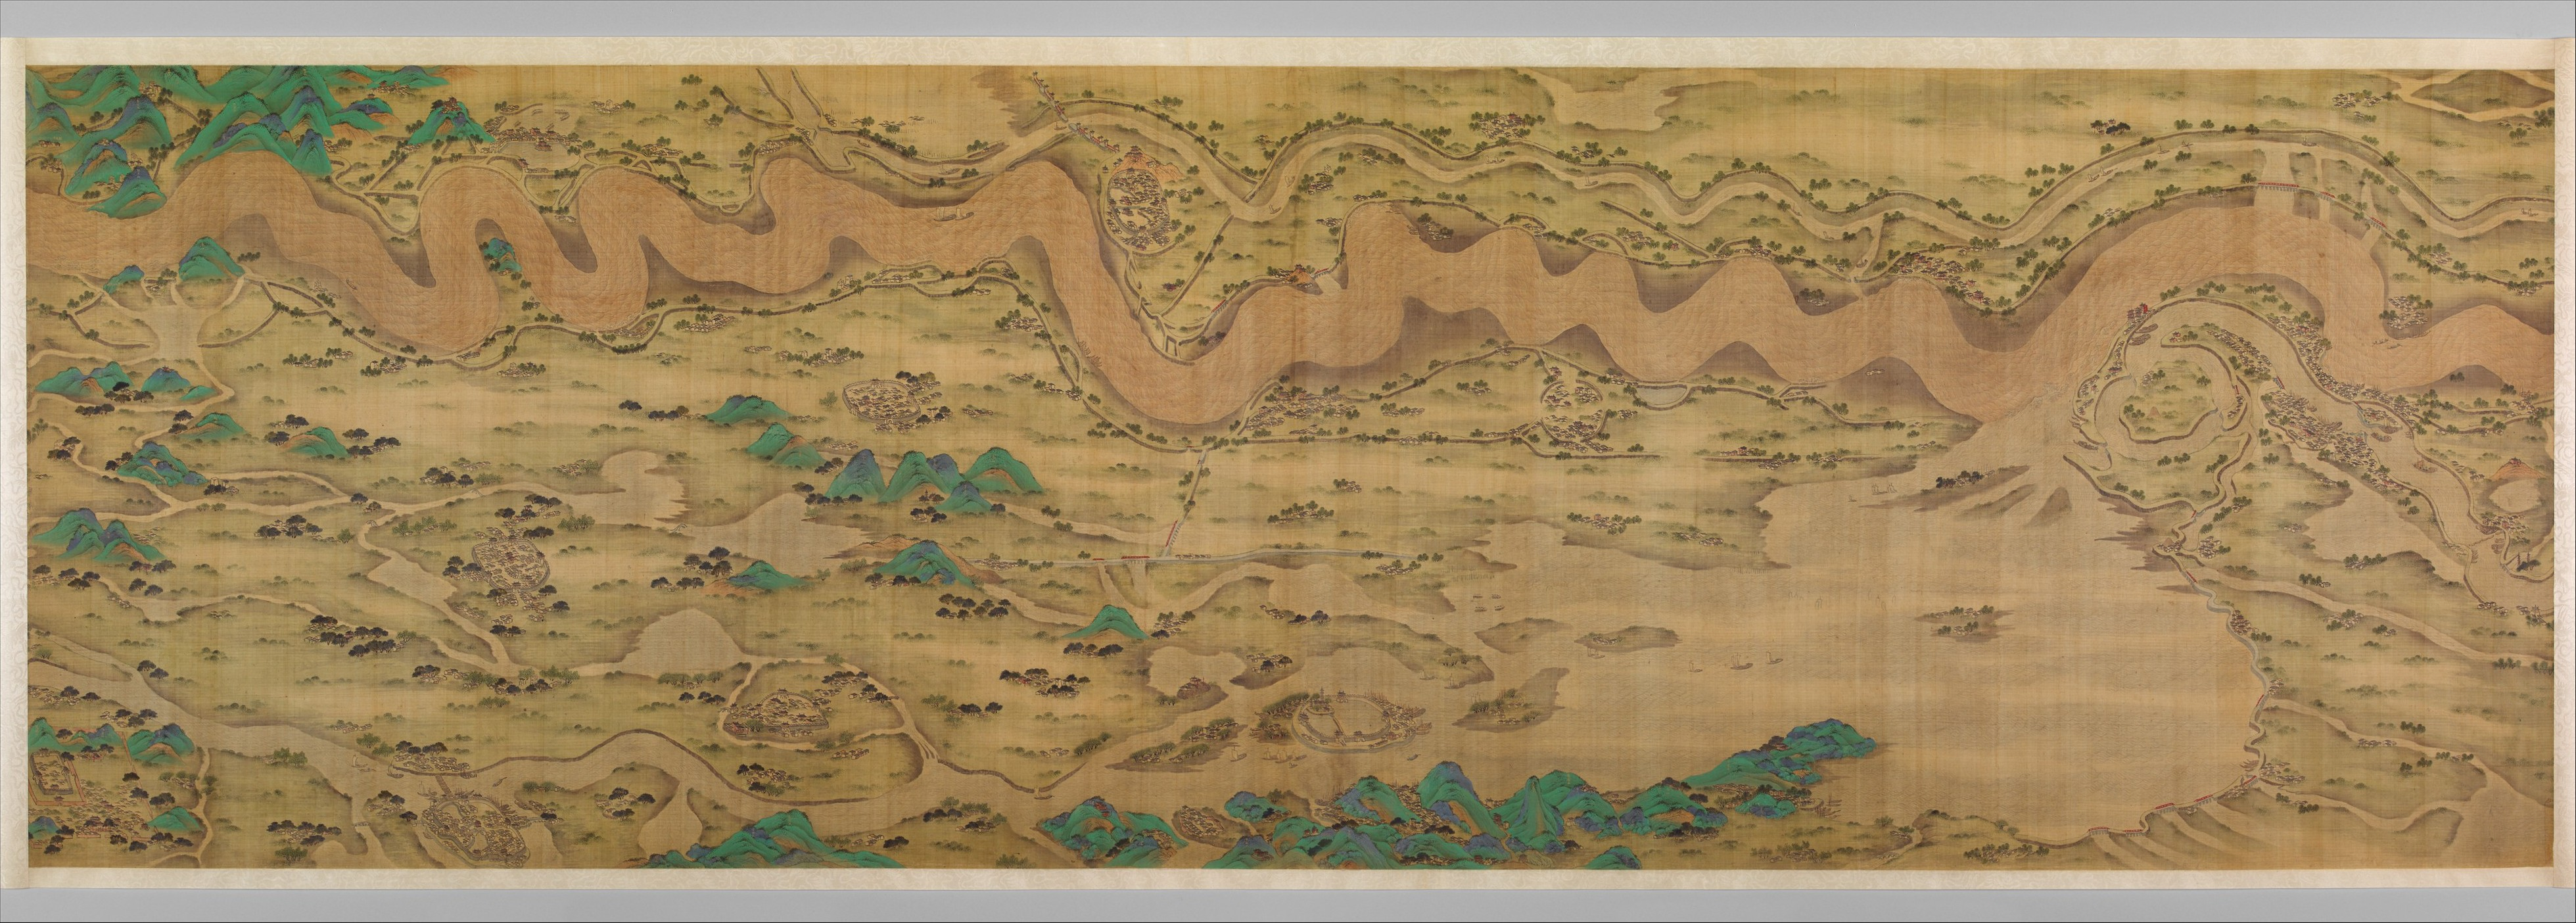 Yellow River Map on indus river, mississippi river, yangzi map, plateau of tibet map, yellow sea, great wall of china, central asia map, gobi desert map, athens map, indus valley map, taiwan map, volga river, mongolian plateau map, loess plateau map, japan map, qin shi huang, ganges river, ob river, indian ocean map, mediterranean sea map, han dynasty, harappa map, brahmaputra river, south china sea, andes mountains map, forbidden city, terracotta army, kalahari desert map, black sea map, arabian desert map, niger river, anyang map, singapore map, tibetan plateau, yangtze river,